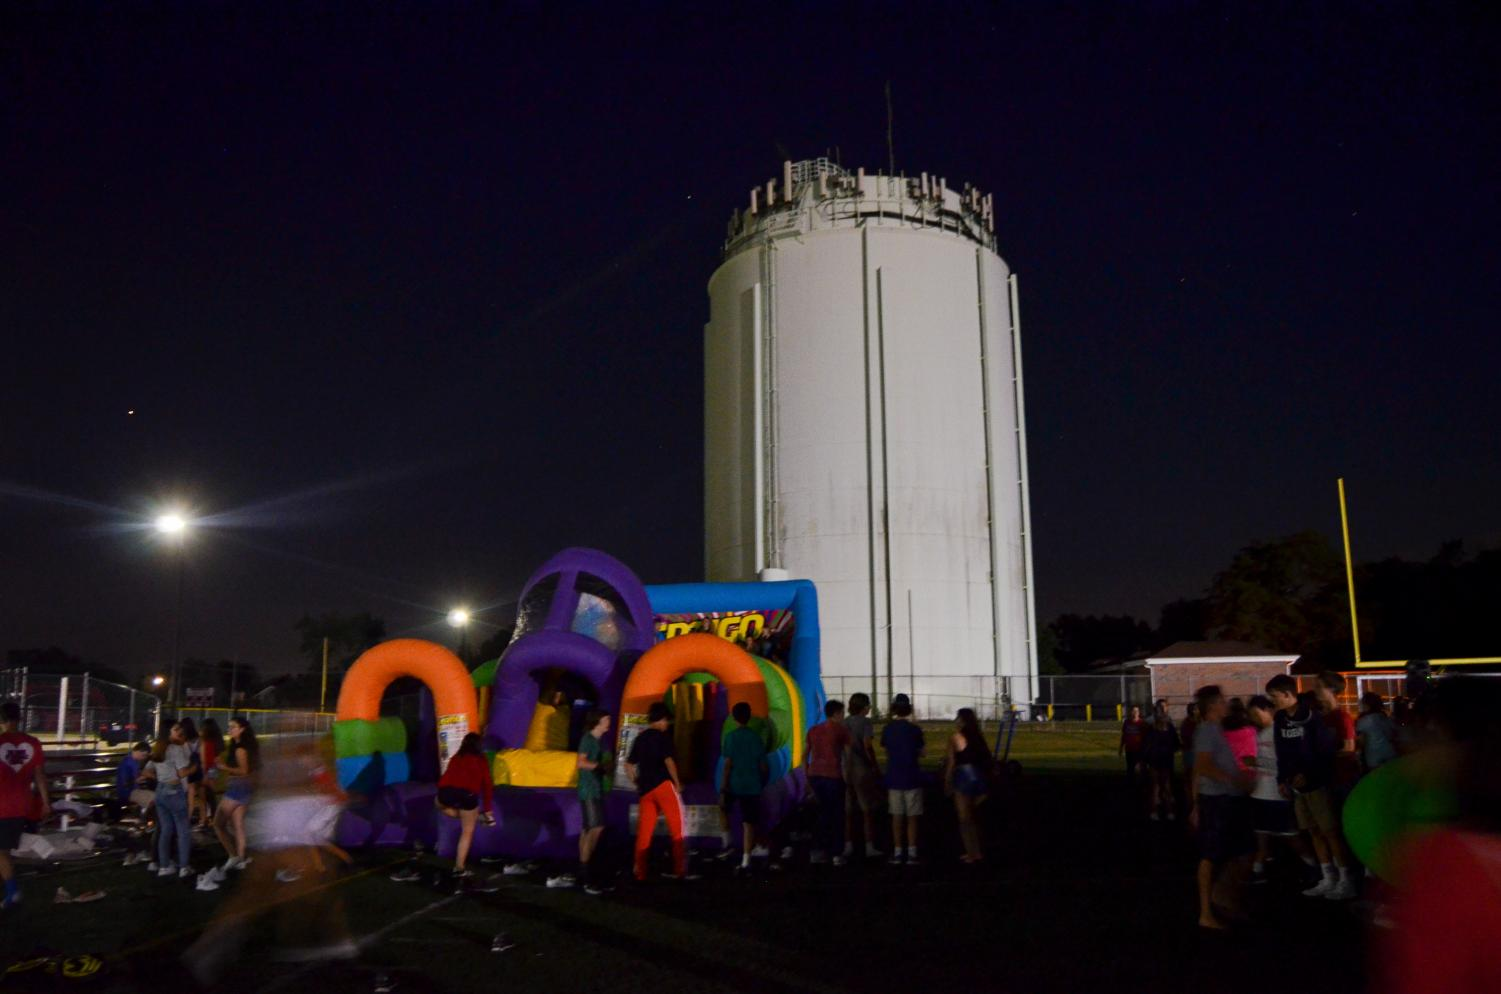 On Friday, Aug. 17, the school held its annual Back to School Bash at the Tower Field.